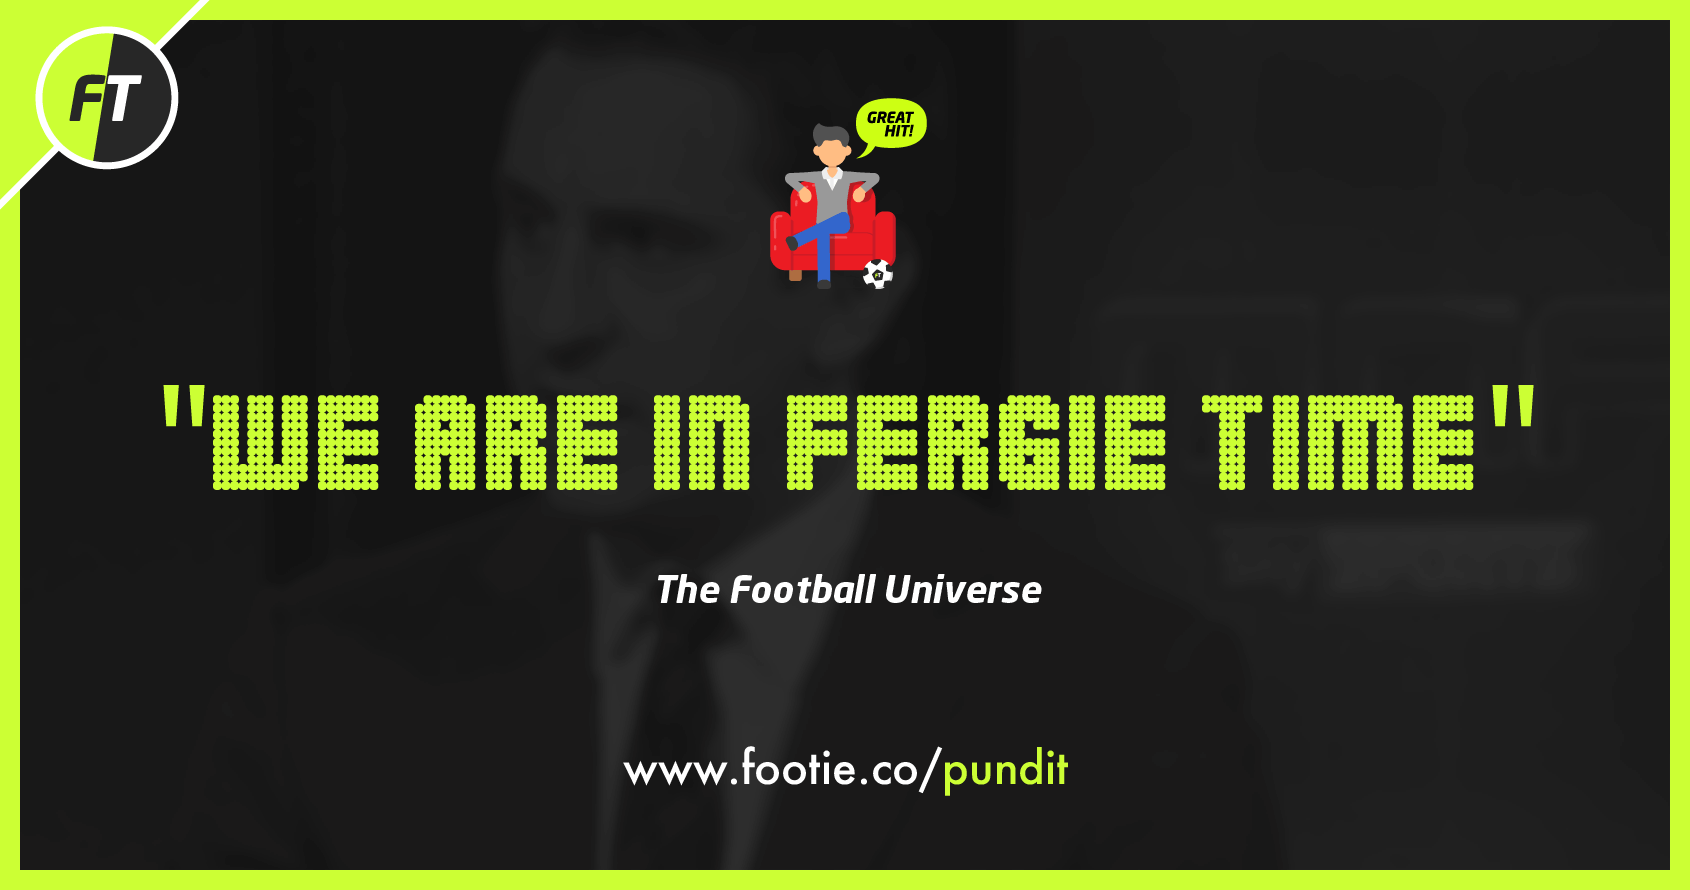 Download FootieTalks® Armchair Pundit iMessage App